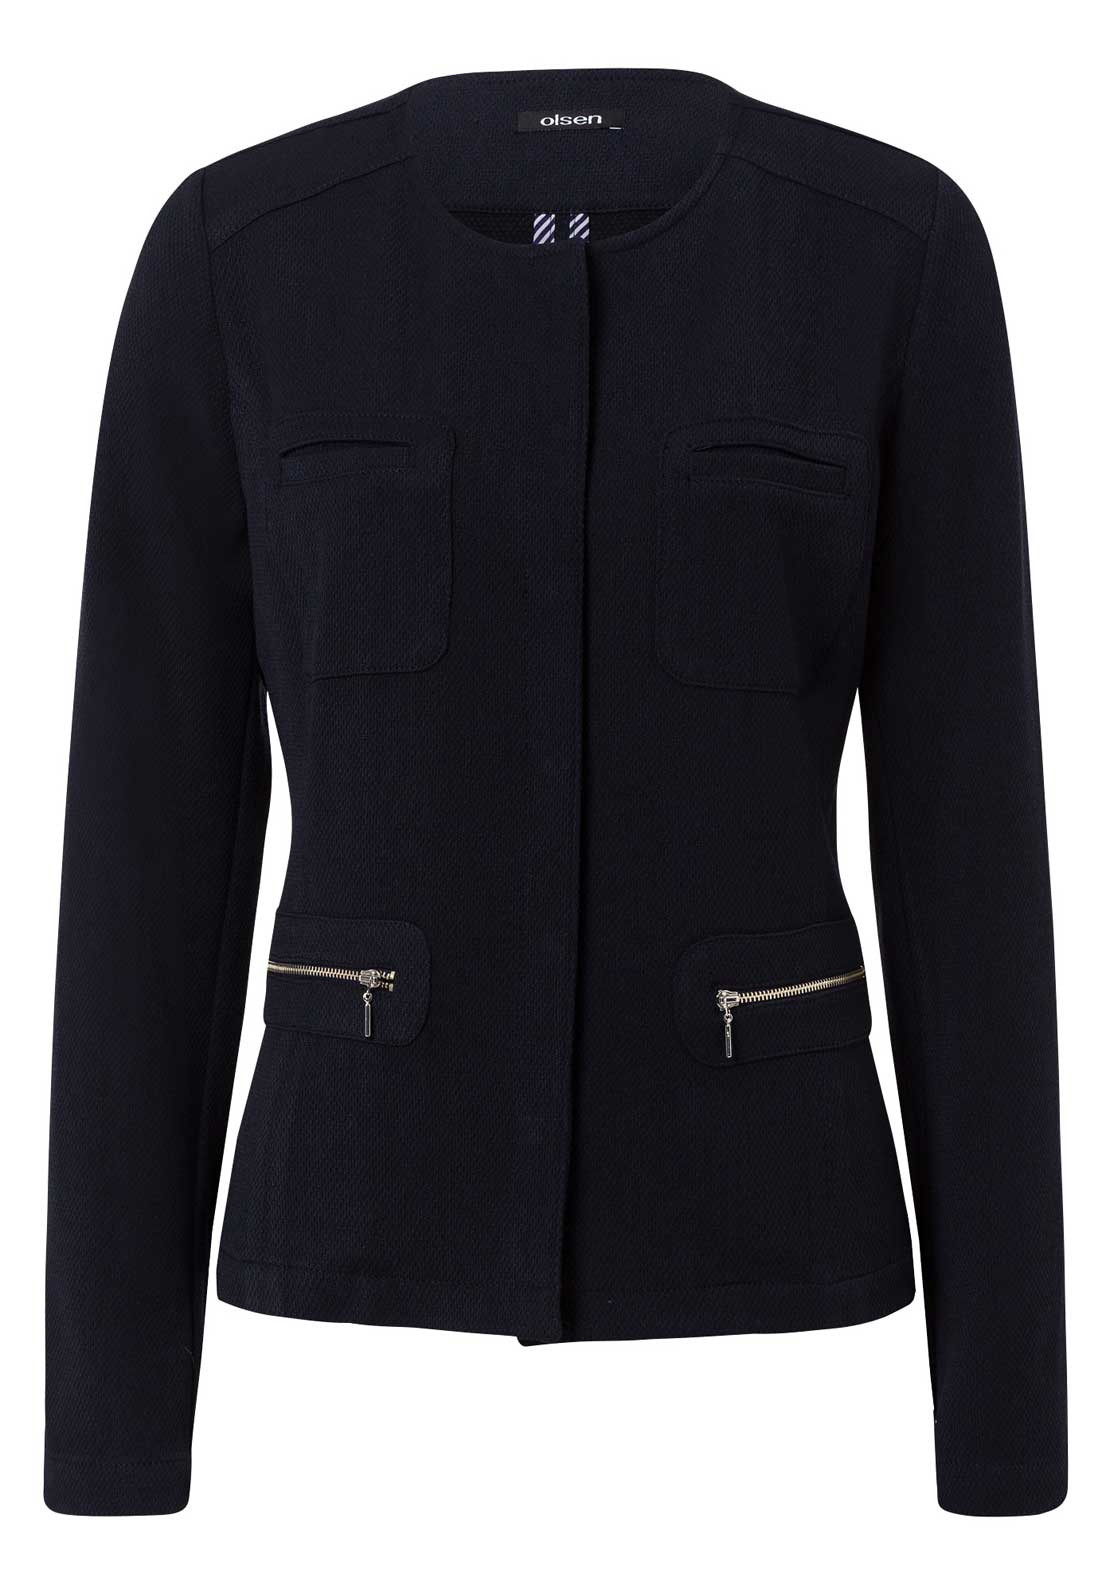 Olsen Long Sleeve Jacket, Navy